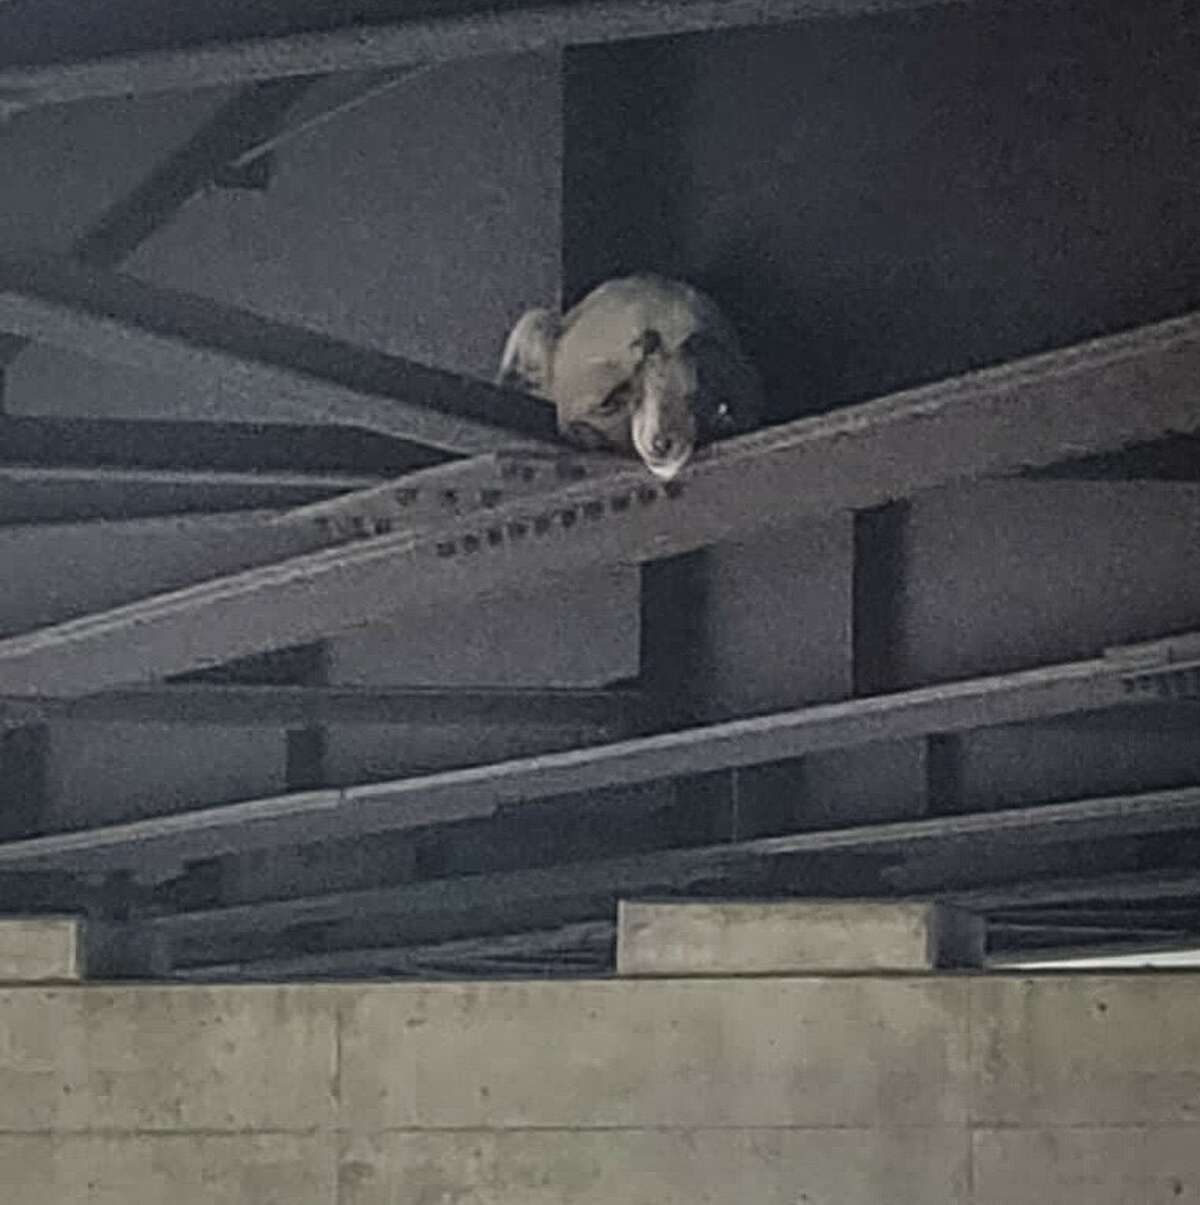 A goat, perhaps taking social distancing to an extreme, needed a rescue after he found himself seemingly trapped on a ledge under a busy highway overpass near Marcy, N.Y.